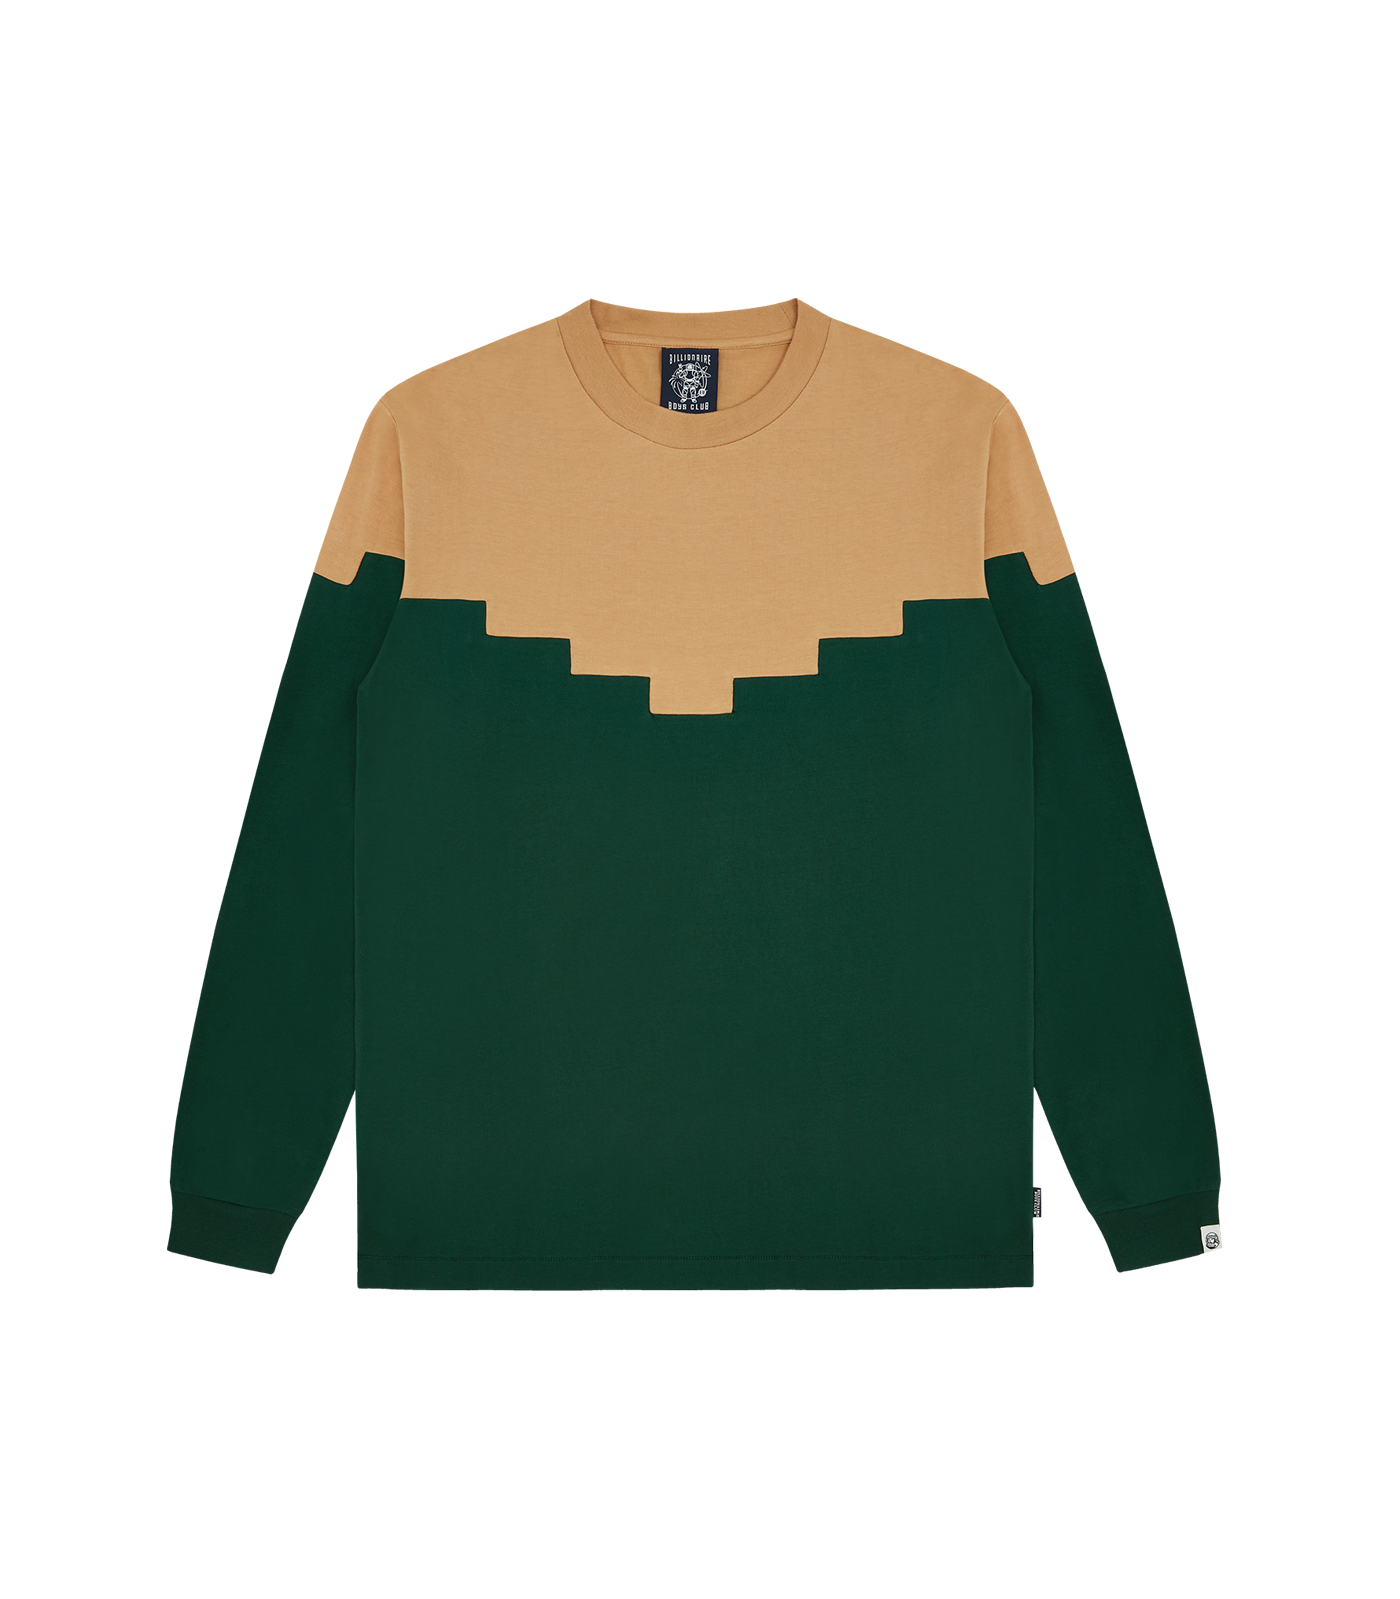 CONTRAST L/S T-SHIRT - DARK GREEN